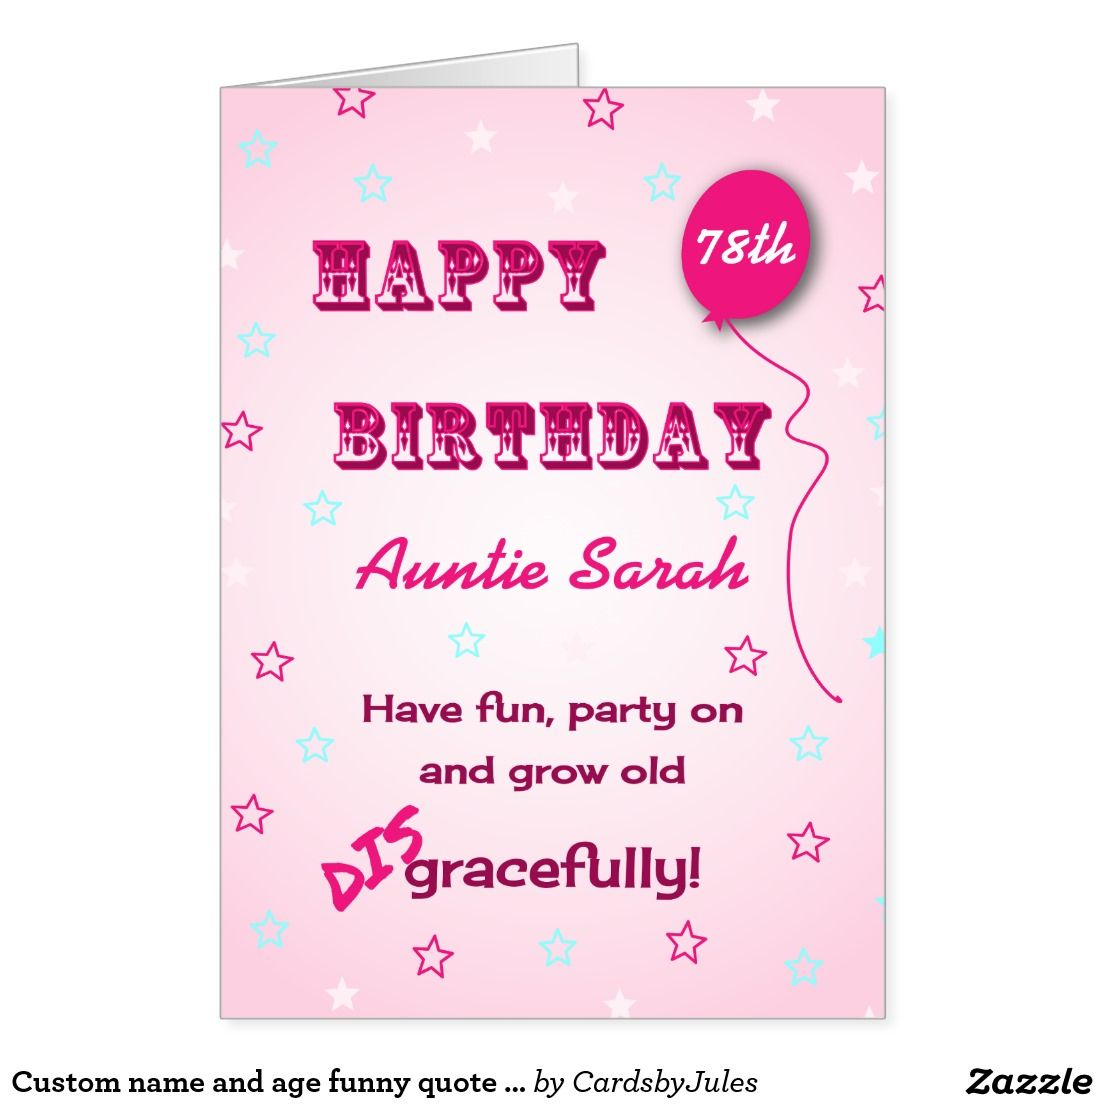 Custom Name And Age Funny Quote 78th Birthday Card Funny Quotes